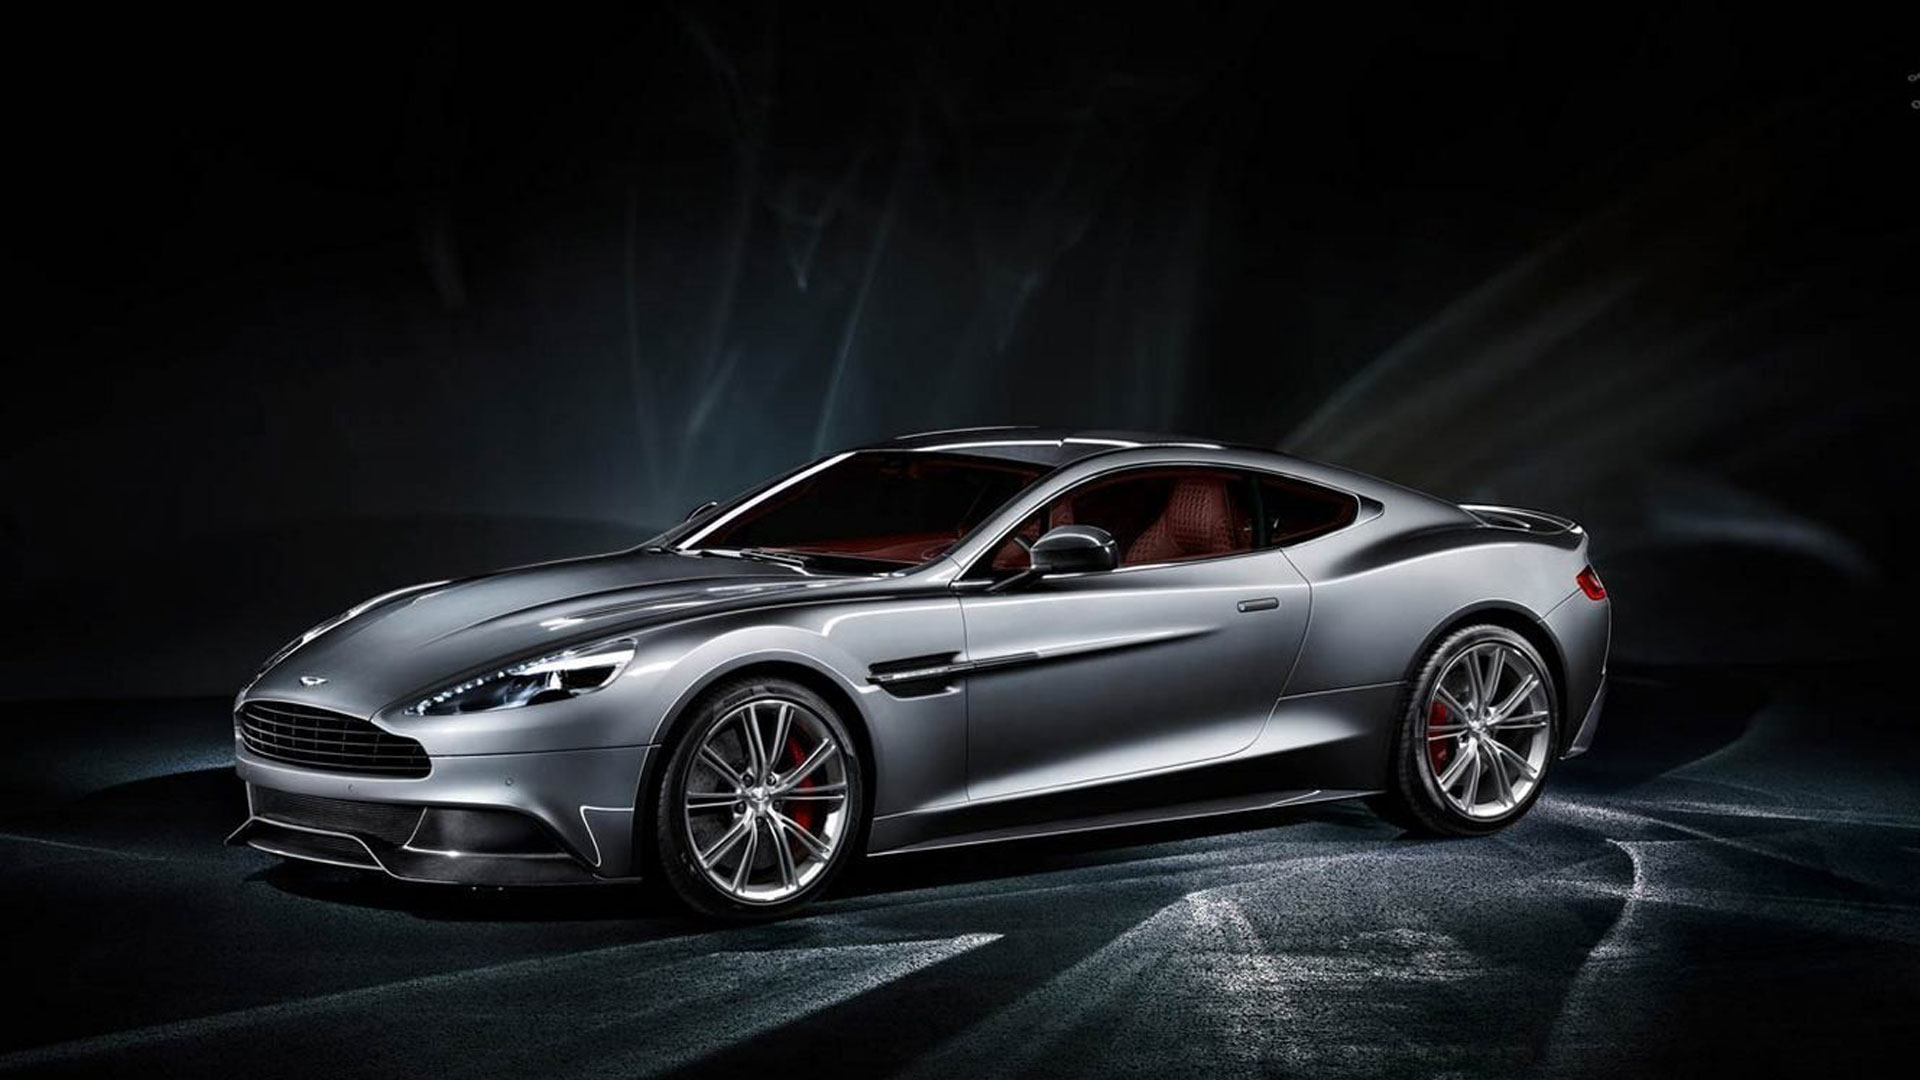 2014 Aston Martin Vanquish Desktop HD Wallpaper 1920x1080